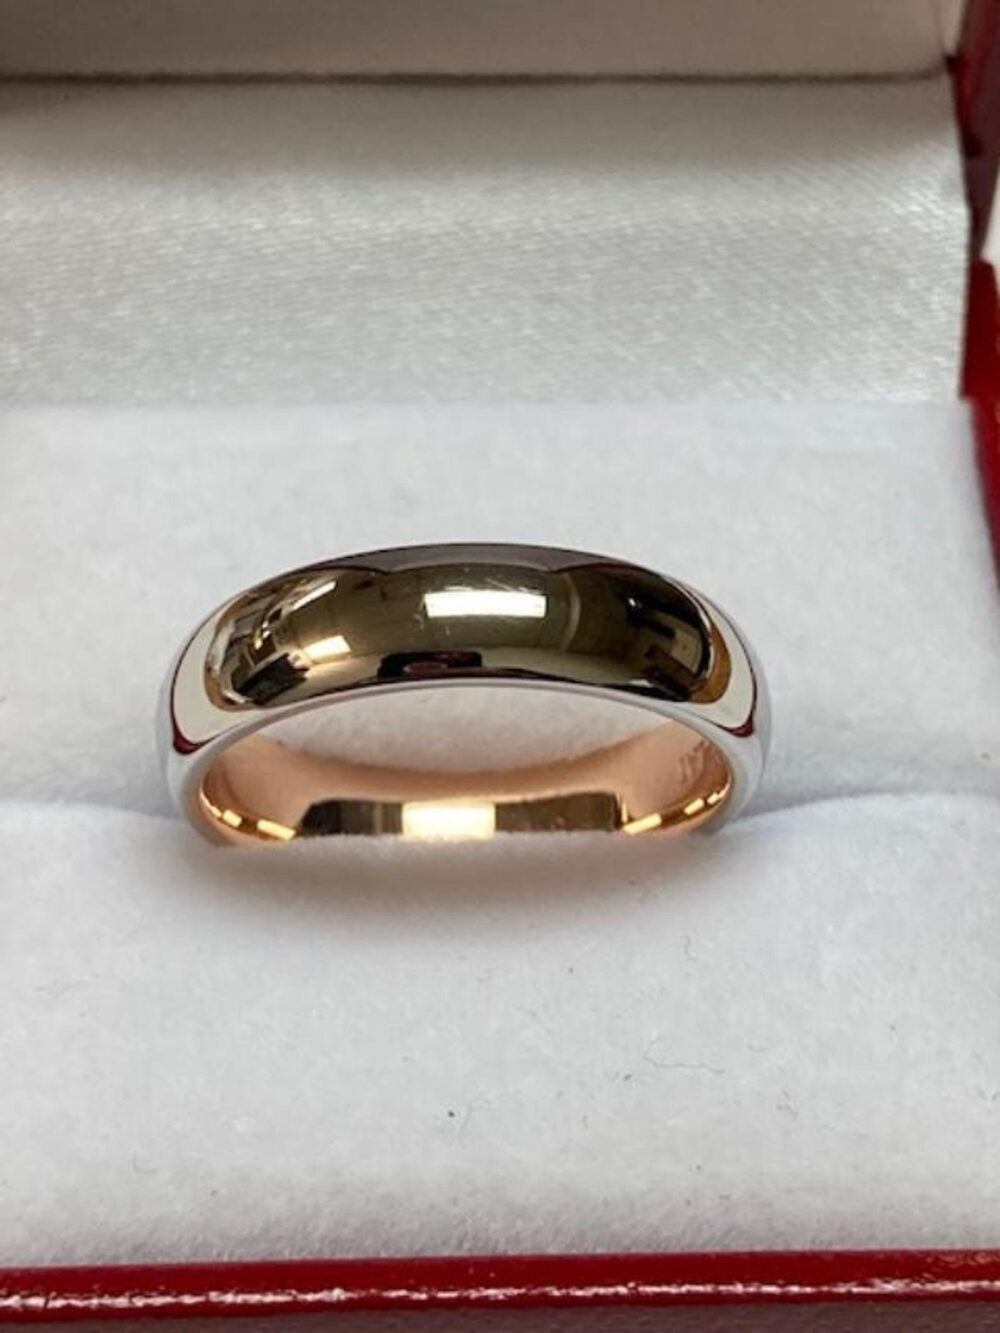 Platinum Wedding Band, Ring, 5mm Dome Shiny Finish Mens Bands, Rings, Rings For Men